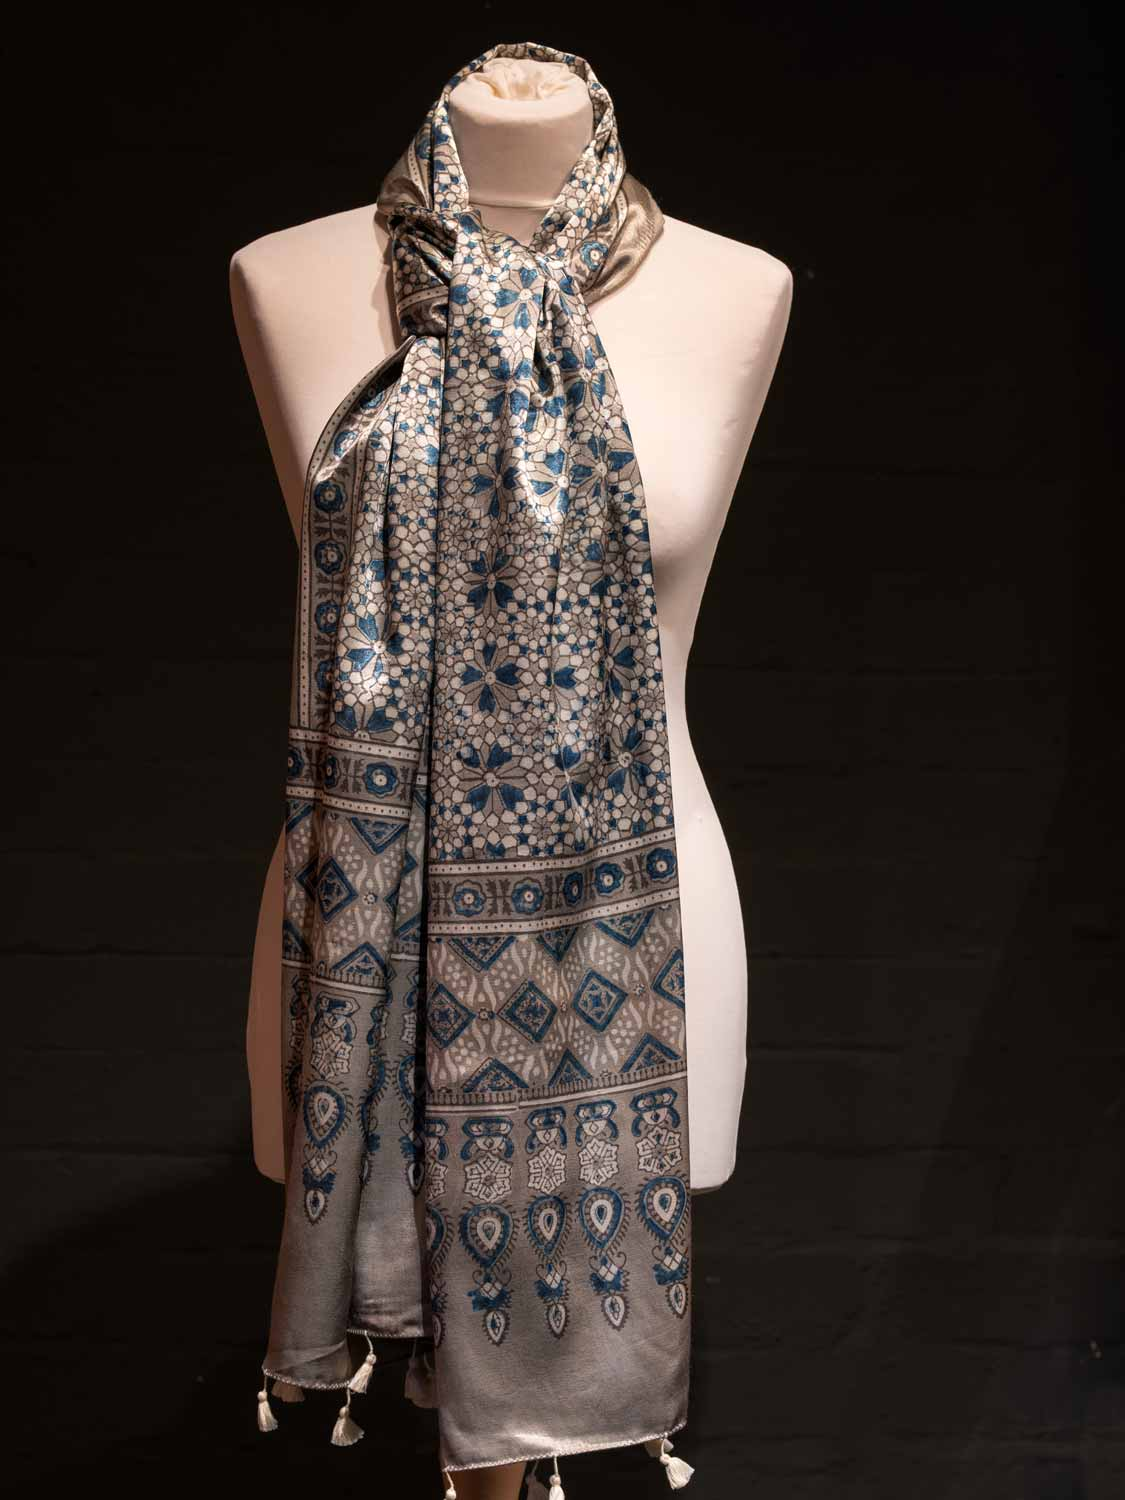 Satin Printed Scarf - Silver and Blue